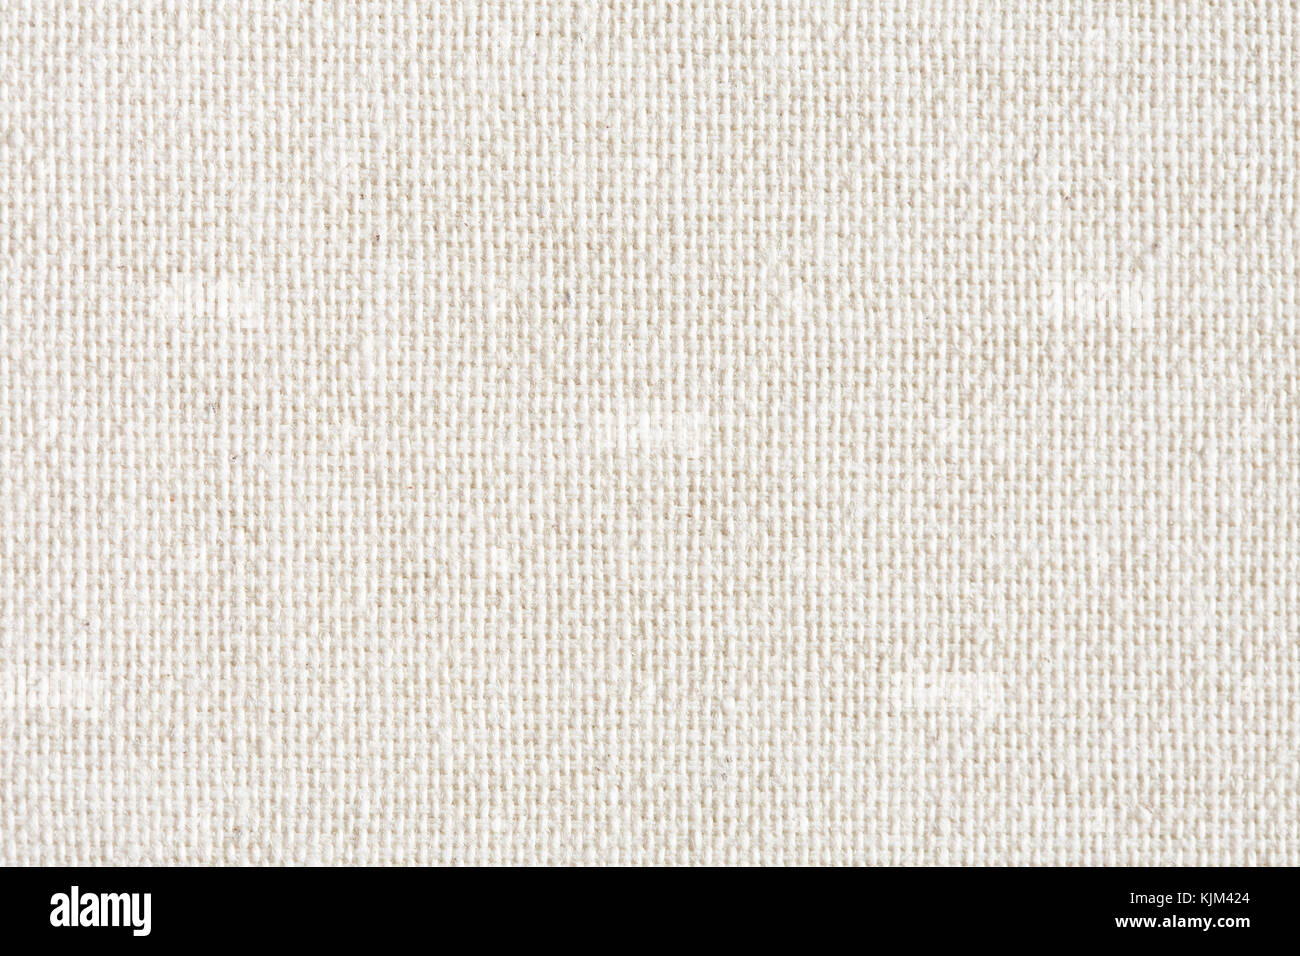 Texture canvas fabric as background. - Stock Image